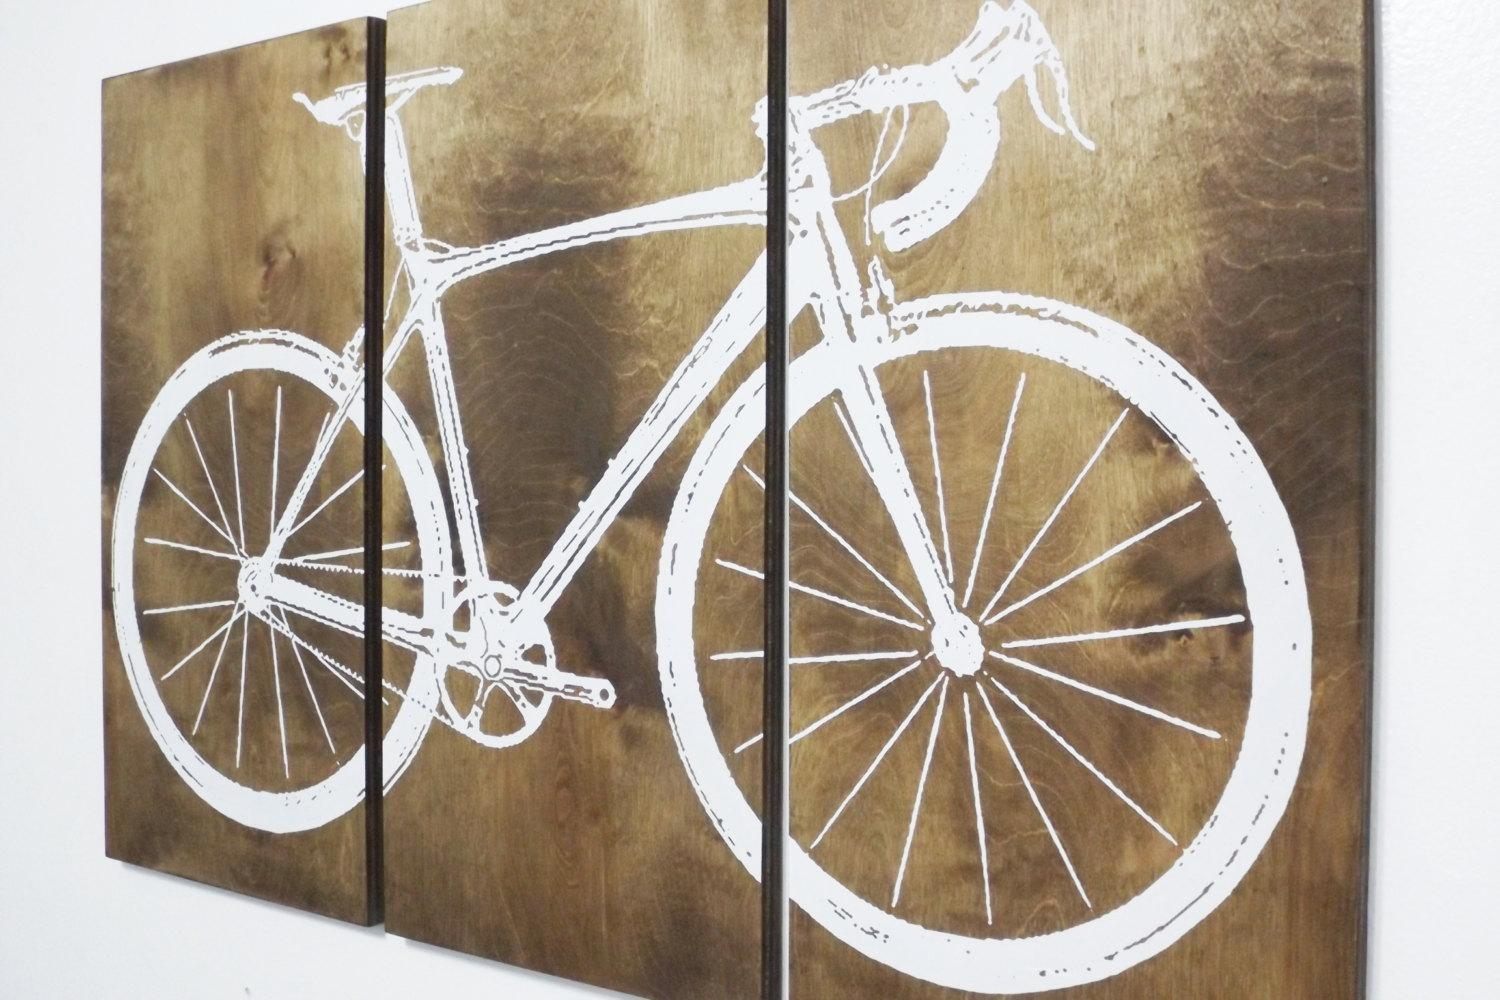 Retro Metal Bike Stockphotos Bicycle Wall Art – Home Decor Ideas In Bicycle Wall Art Decor (View 11 of 20)